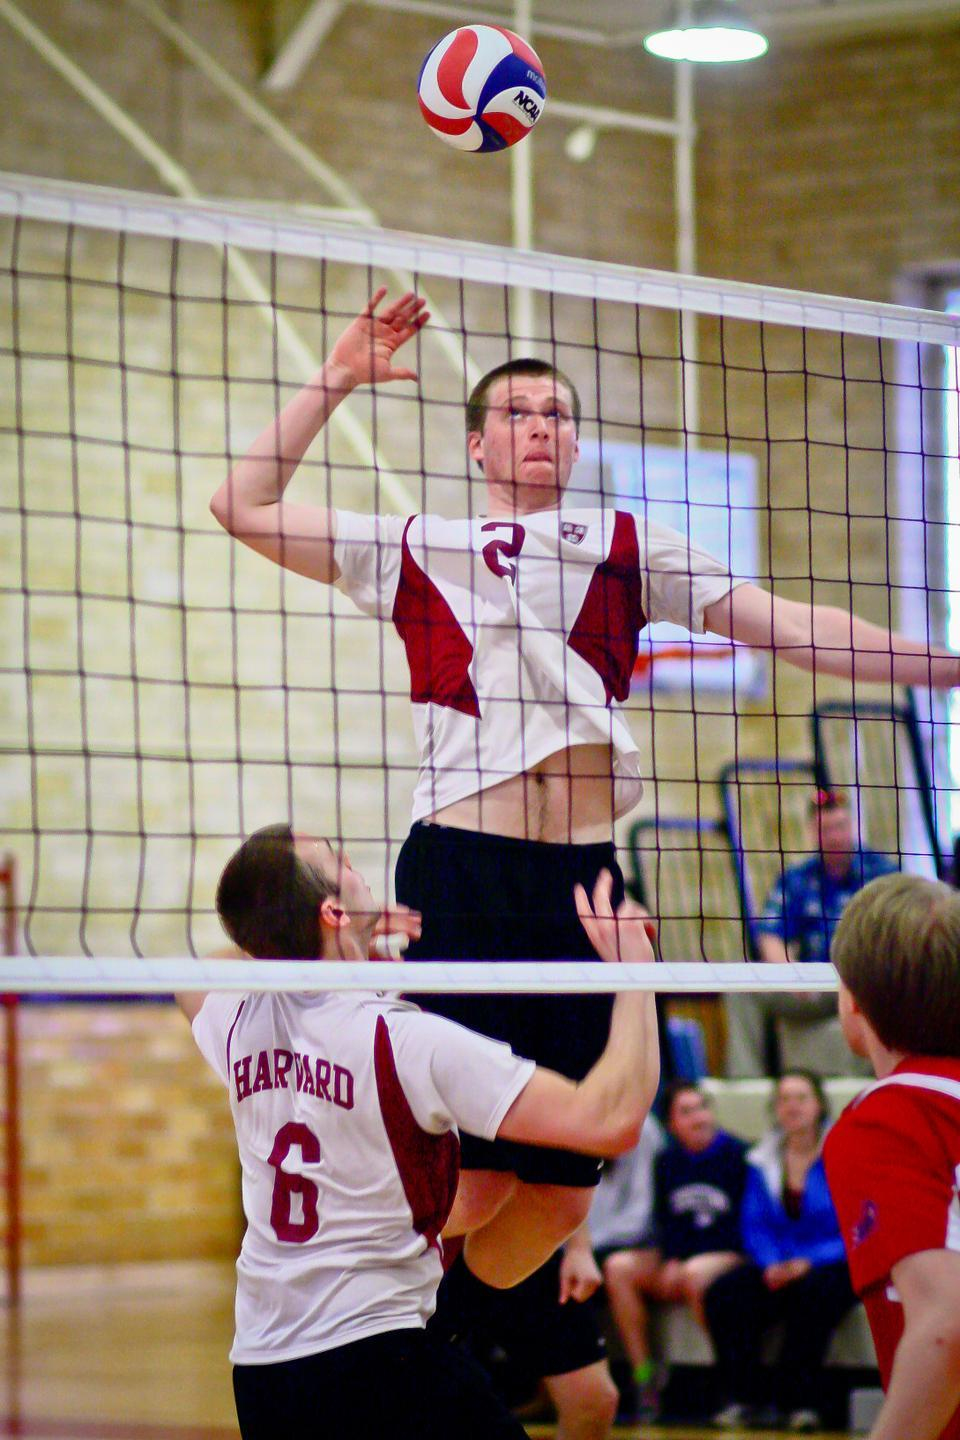 Sophomore Michael Owen, shown above in Saturday's matchup against NJIT, tallied three kills and two digs during the Harvard men's volleyball team's 3-1 victory over Rutgers-Newark on Friday night.